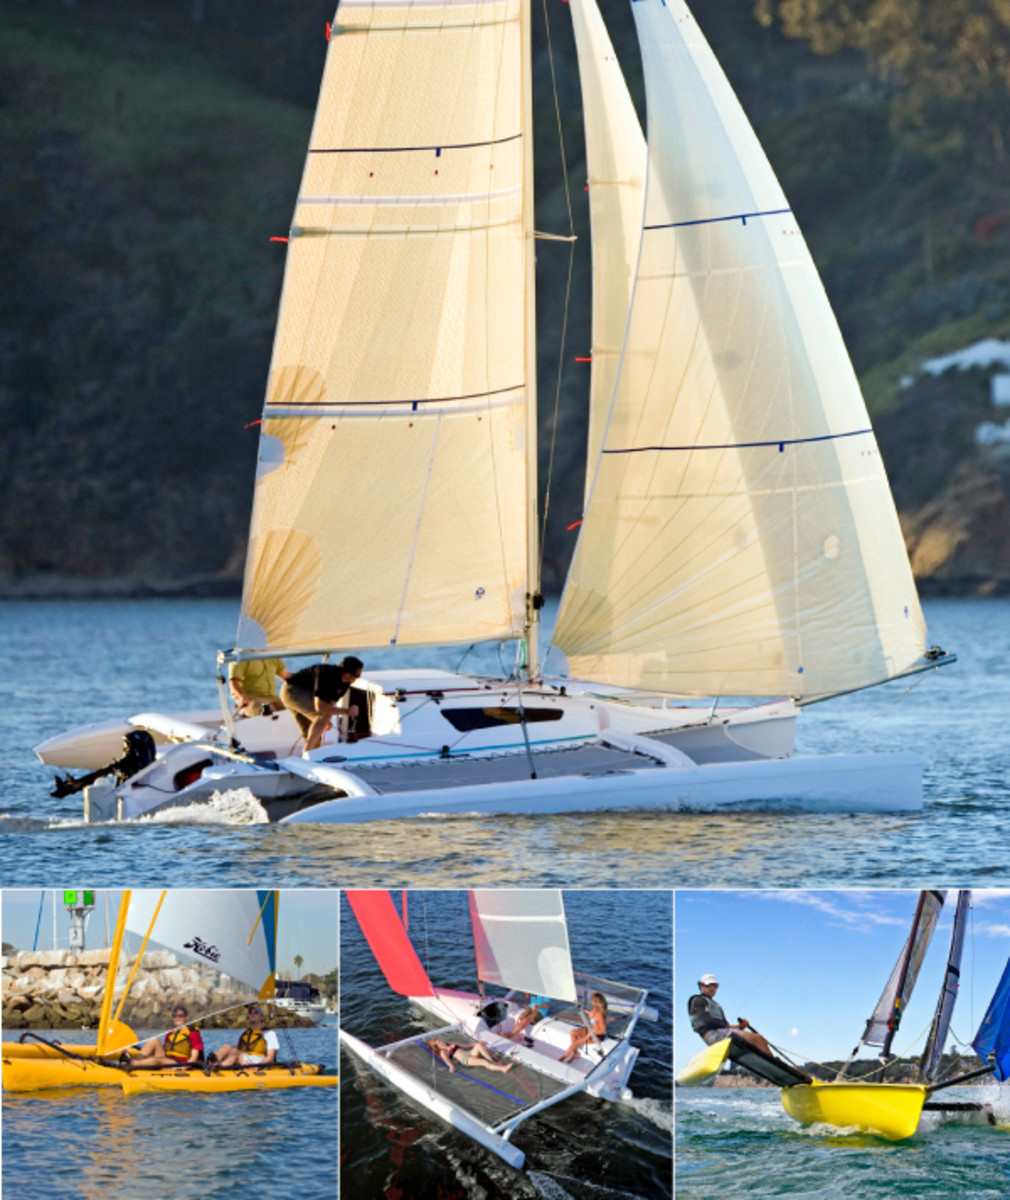 Daysailers with speed and thrills to burn: (clockwise from top) the Corsair 750, Weta, Searail 19 and Hobie Mirage Tandem